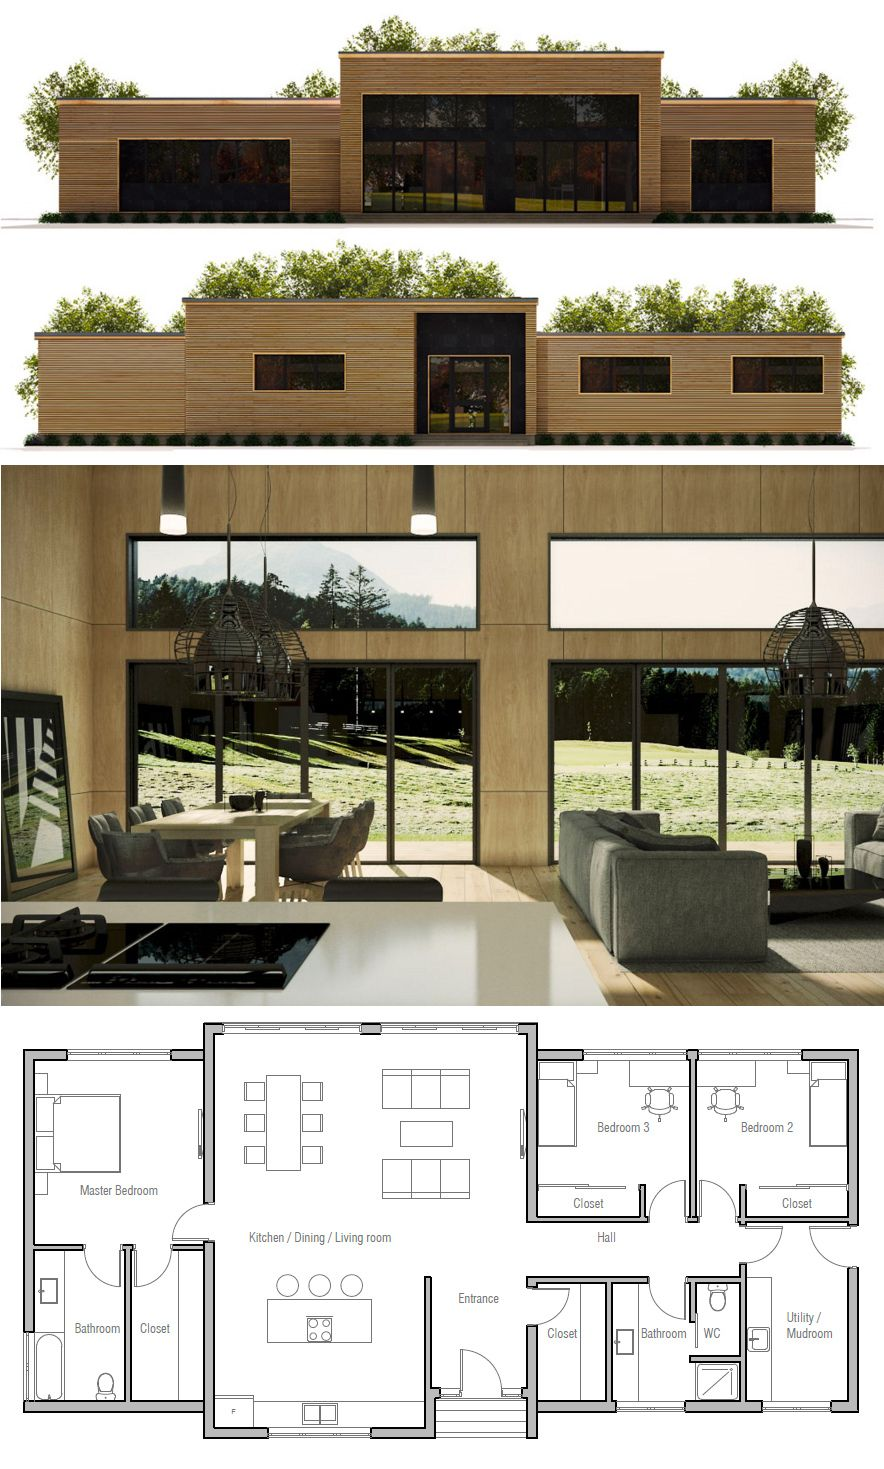 Master bedroom interior design plan  House Plan  Architektur  Pinterest  House Architecture and